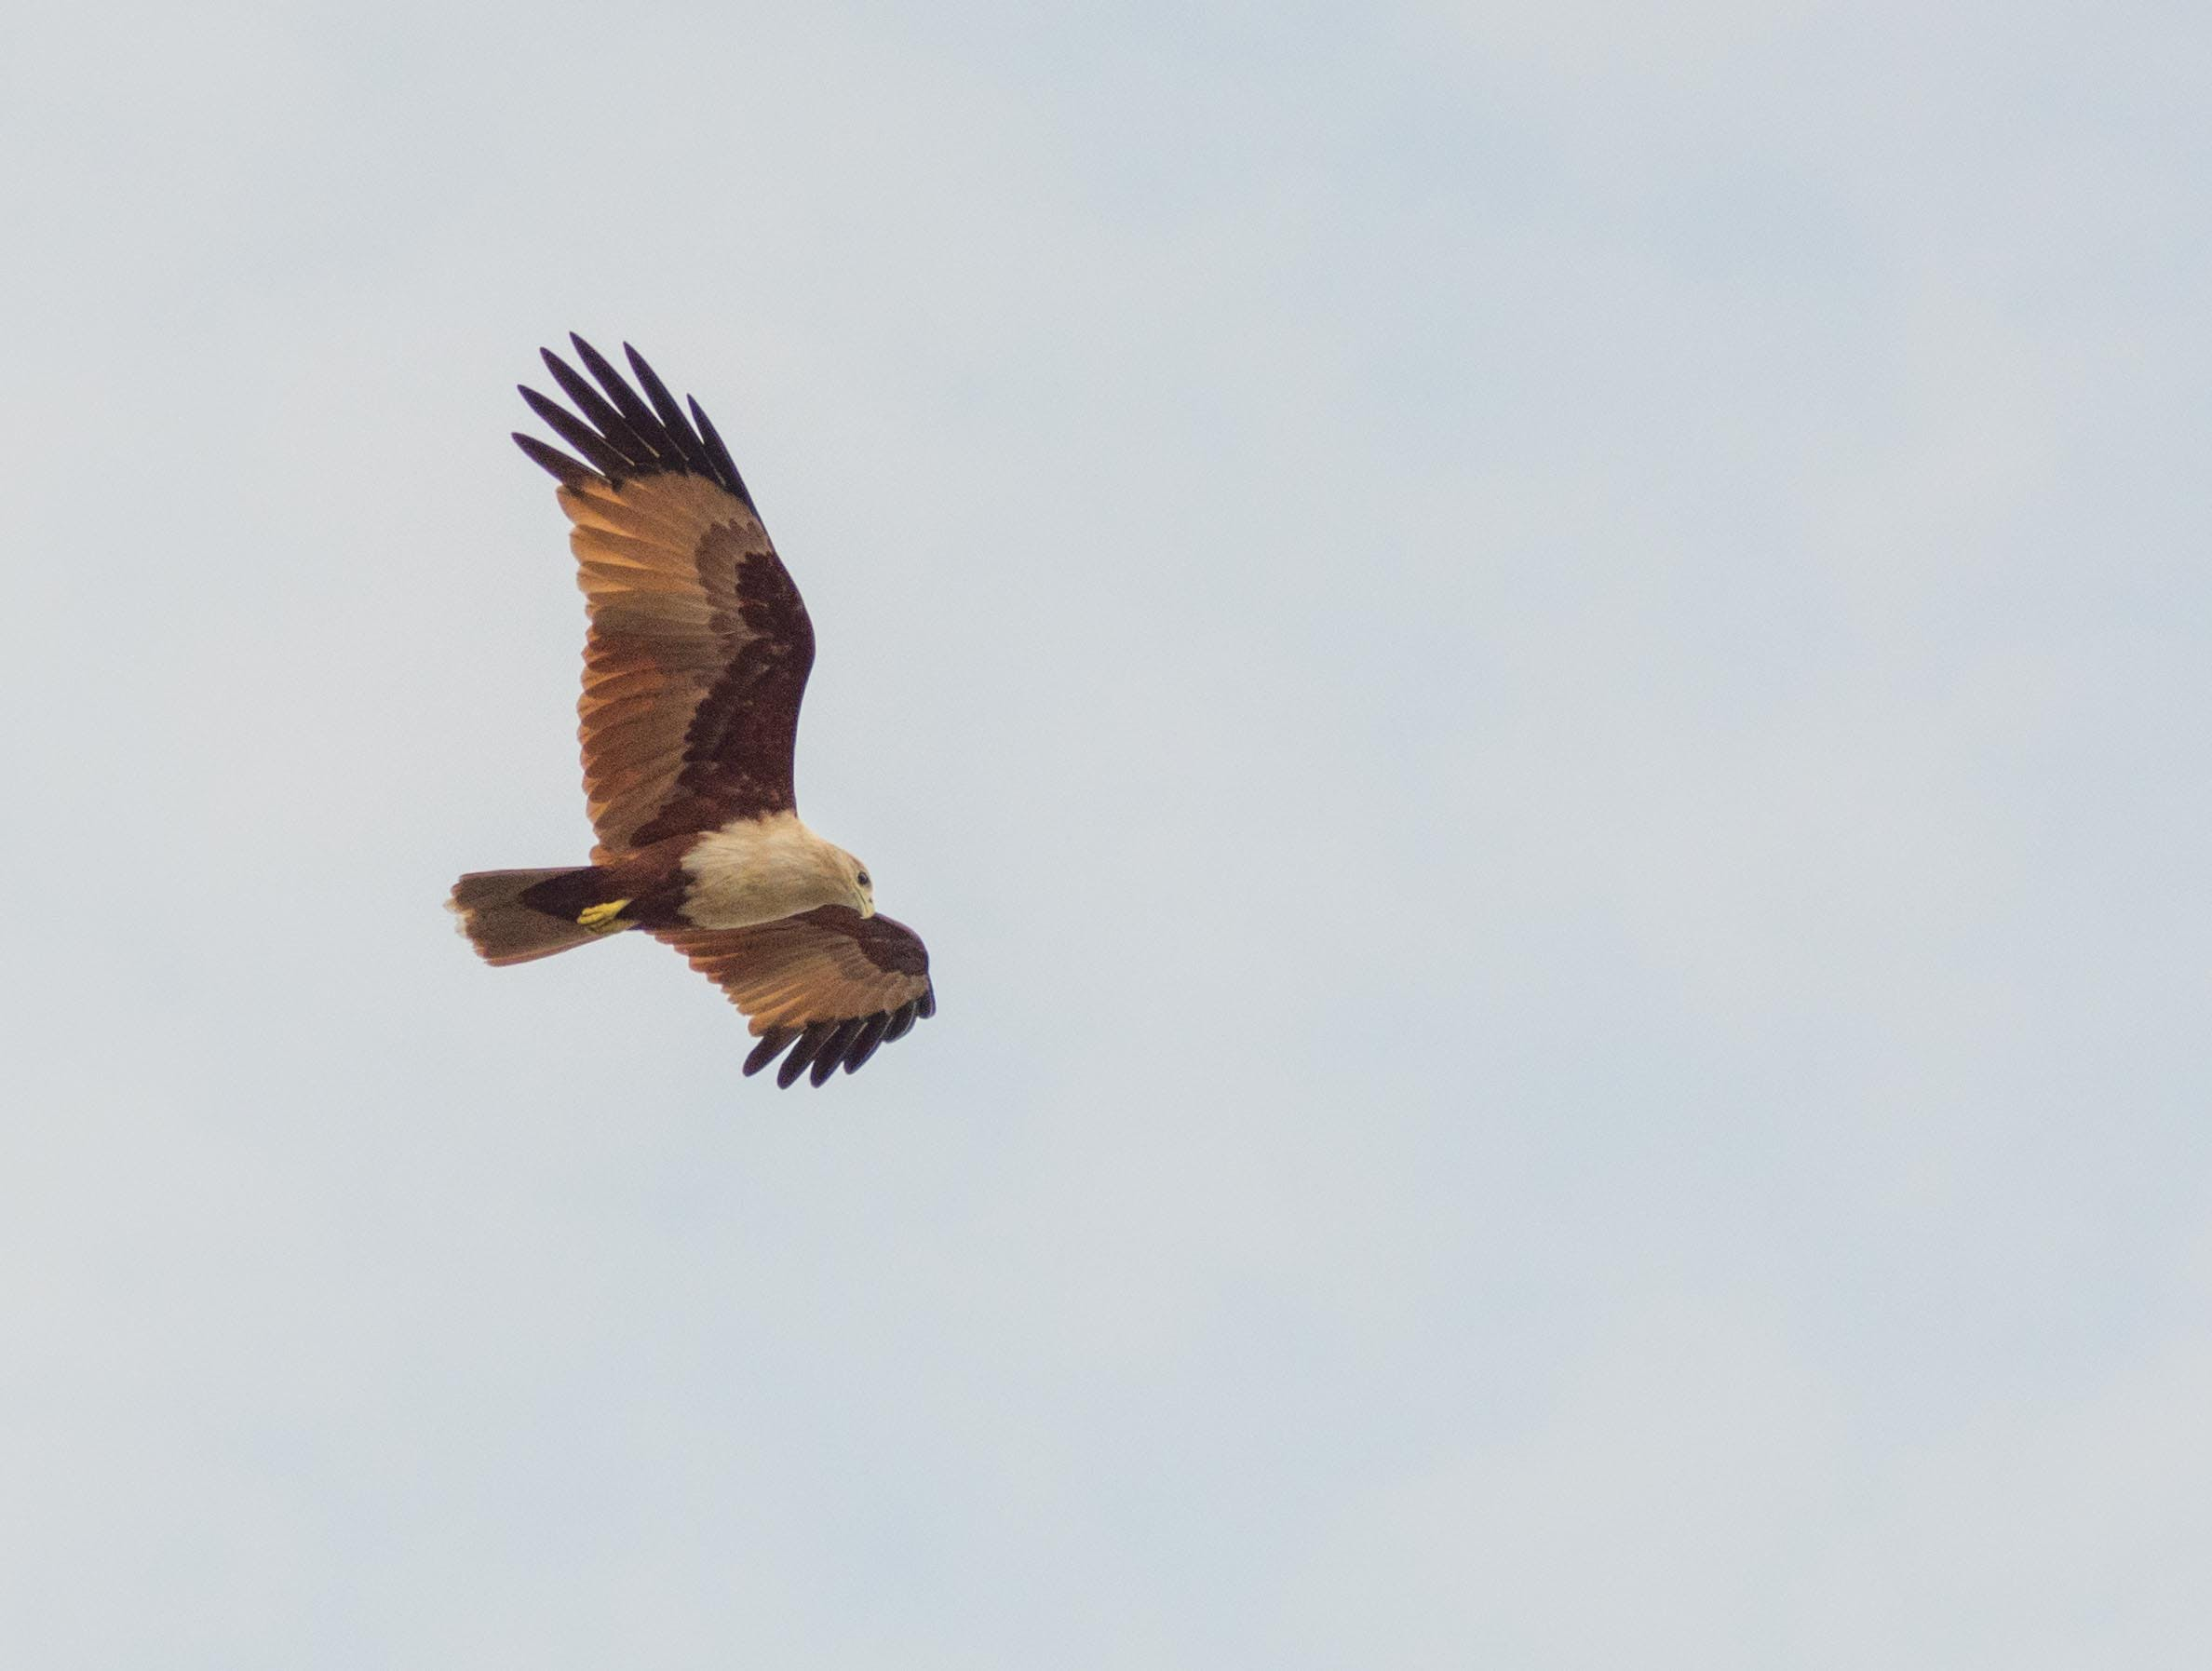 Photography of White and Brown Bird Flying